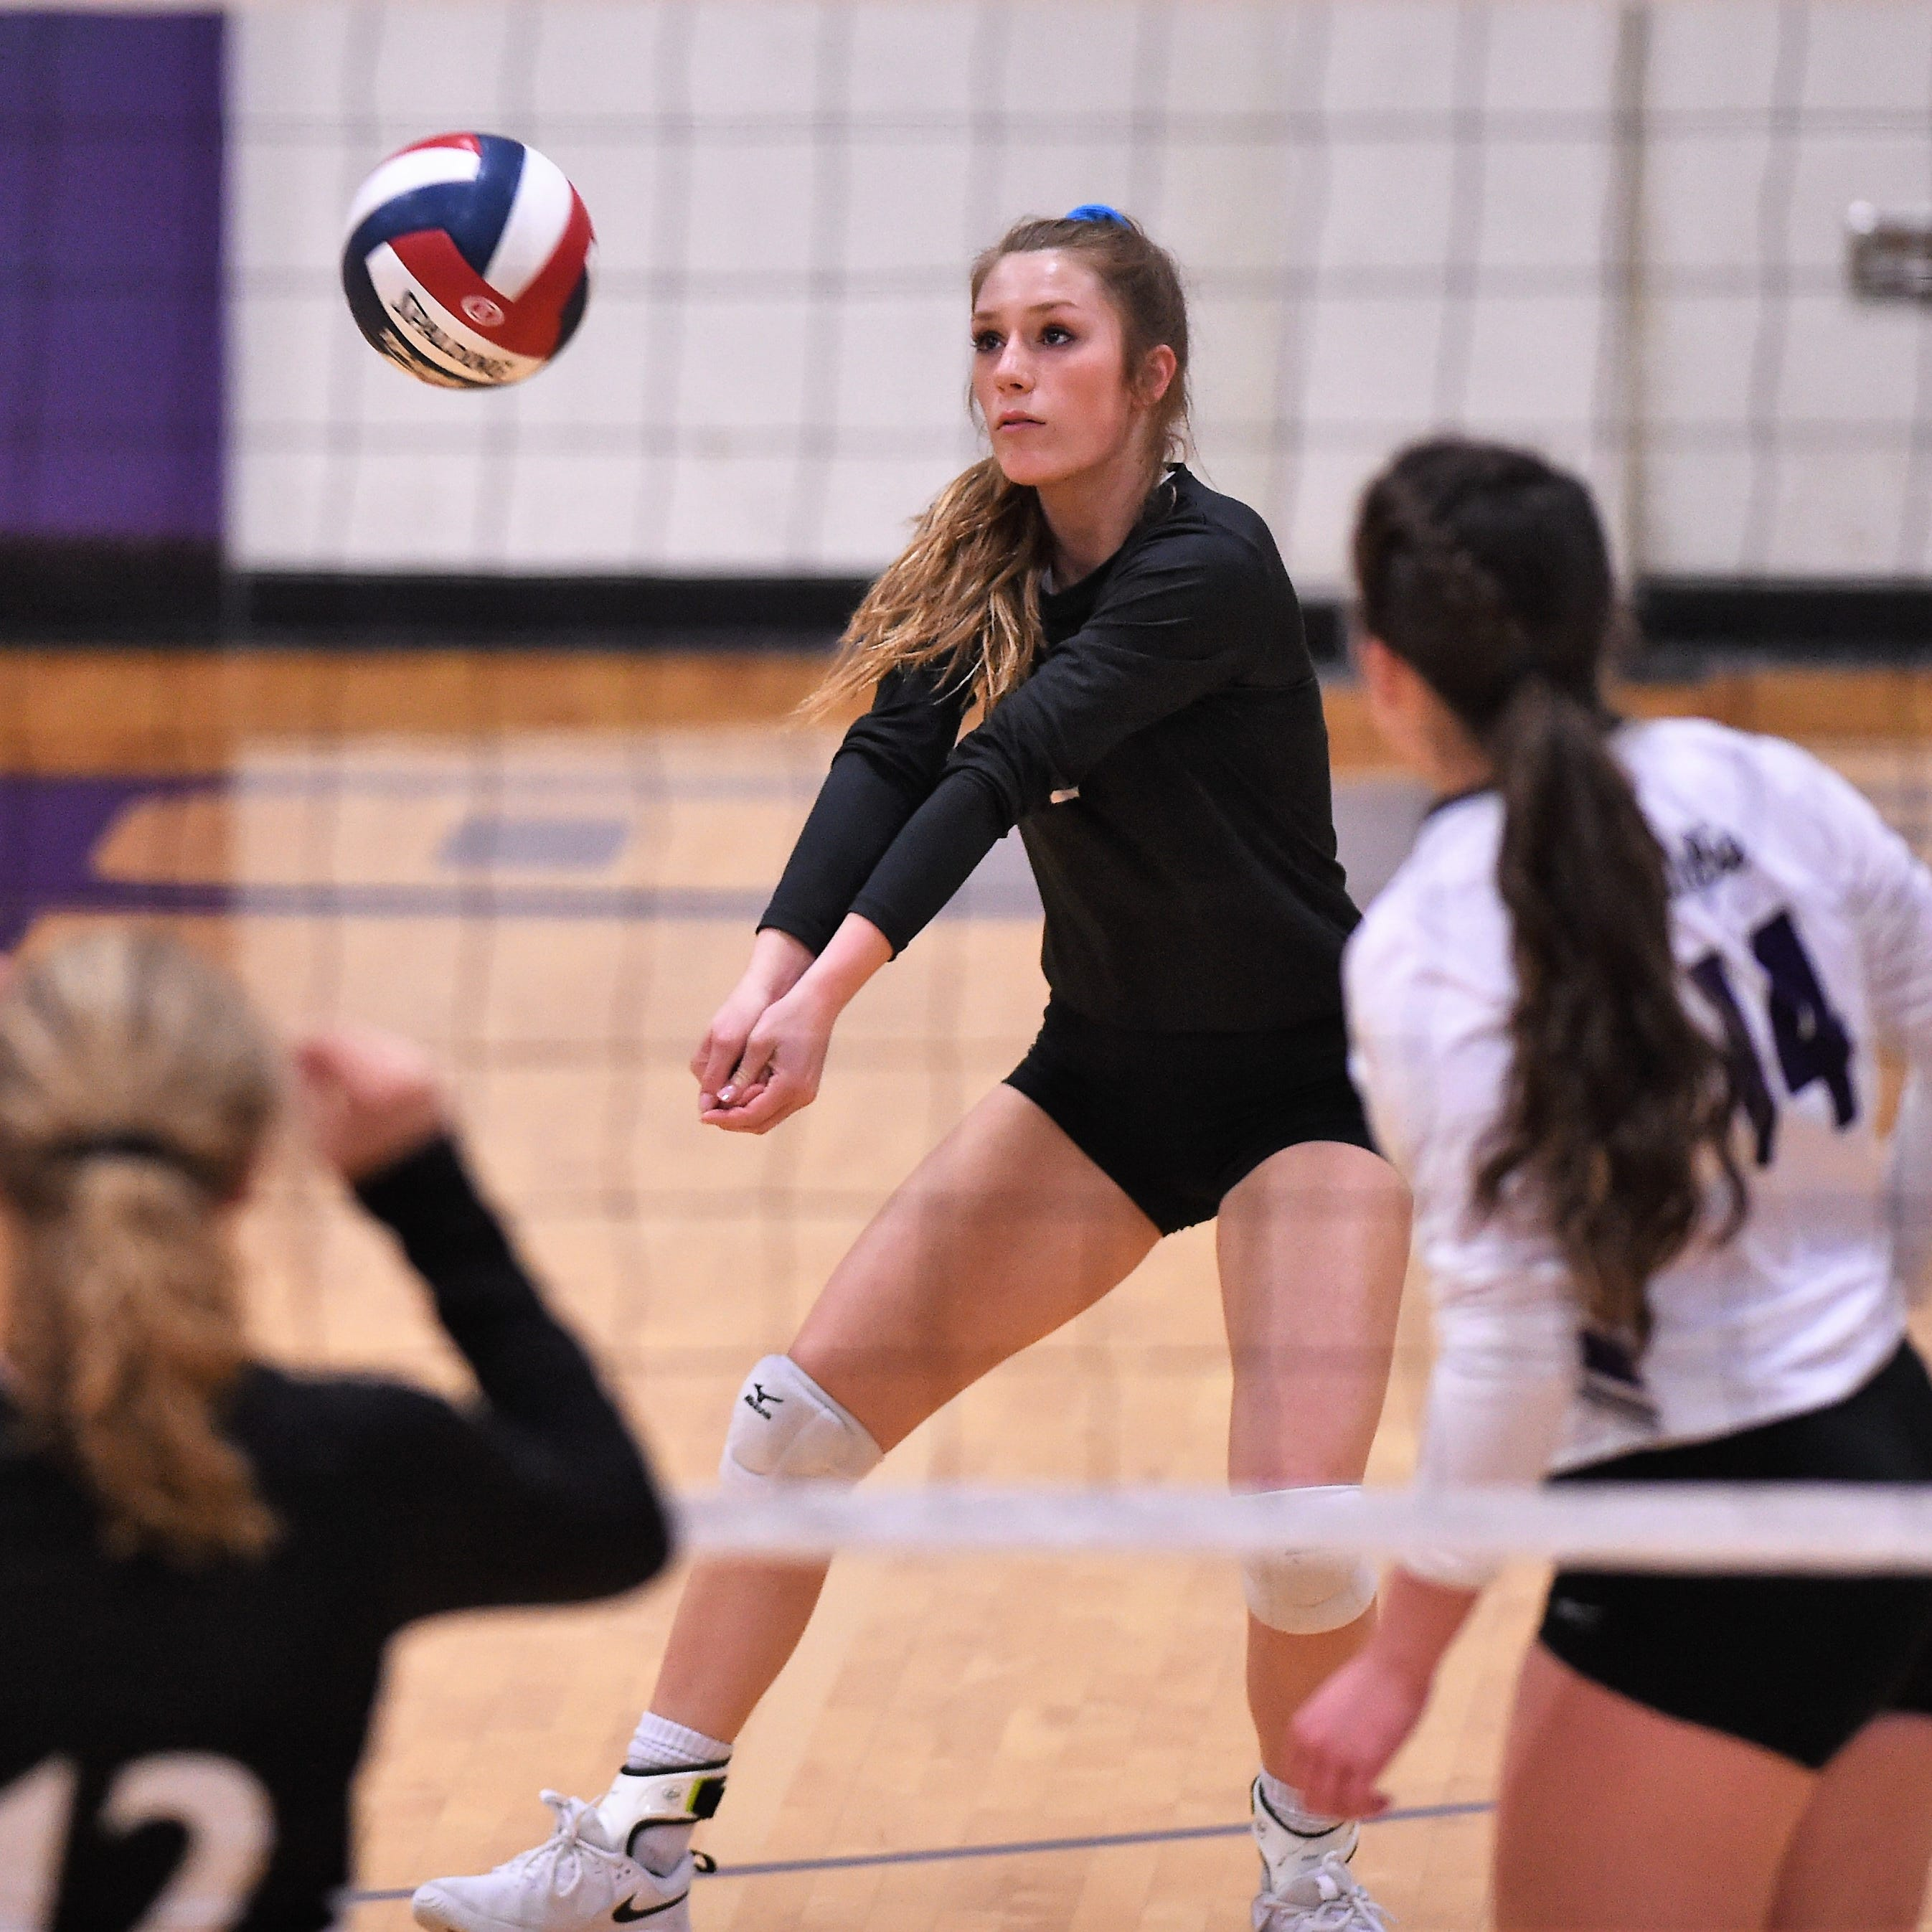 Wylie's Pierson Sanders reaches to return a serve during the Lady Bulldogs' match against Big Spring on Tuesday, Sept. 18, 2018.